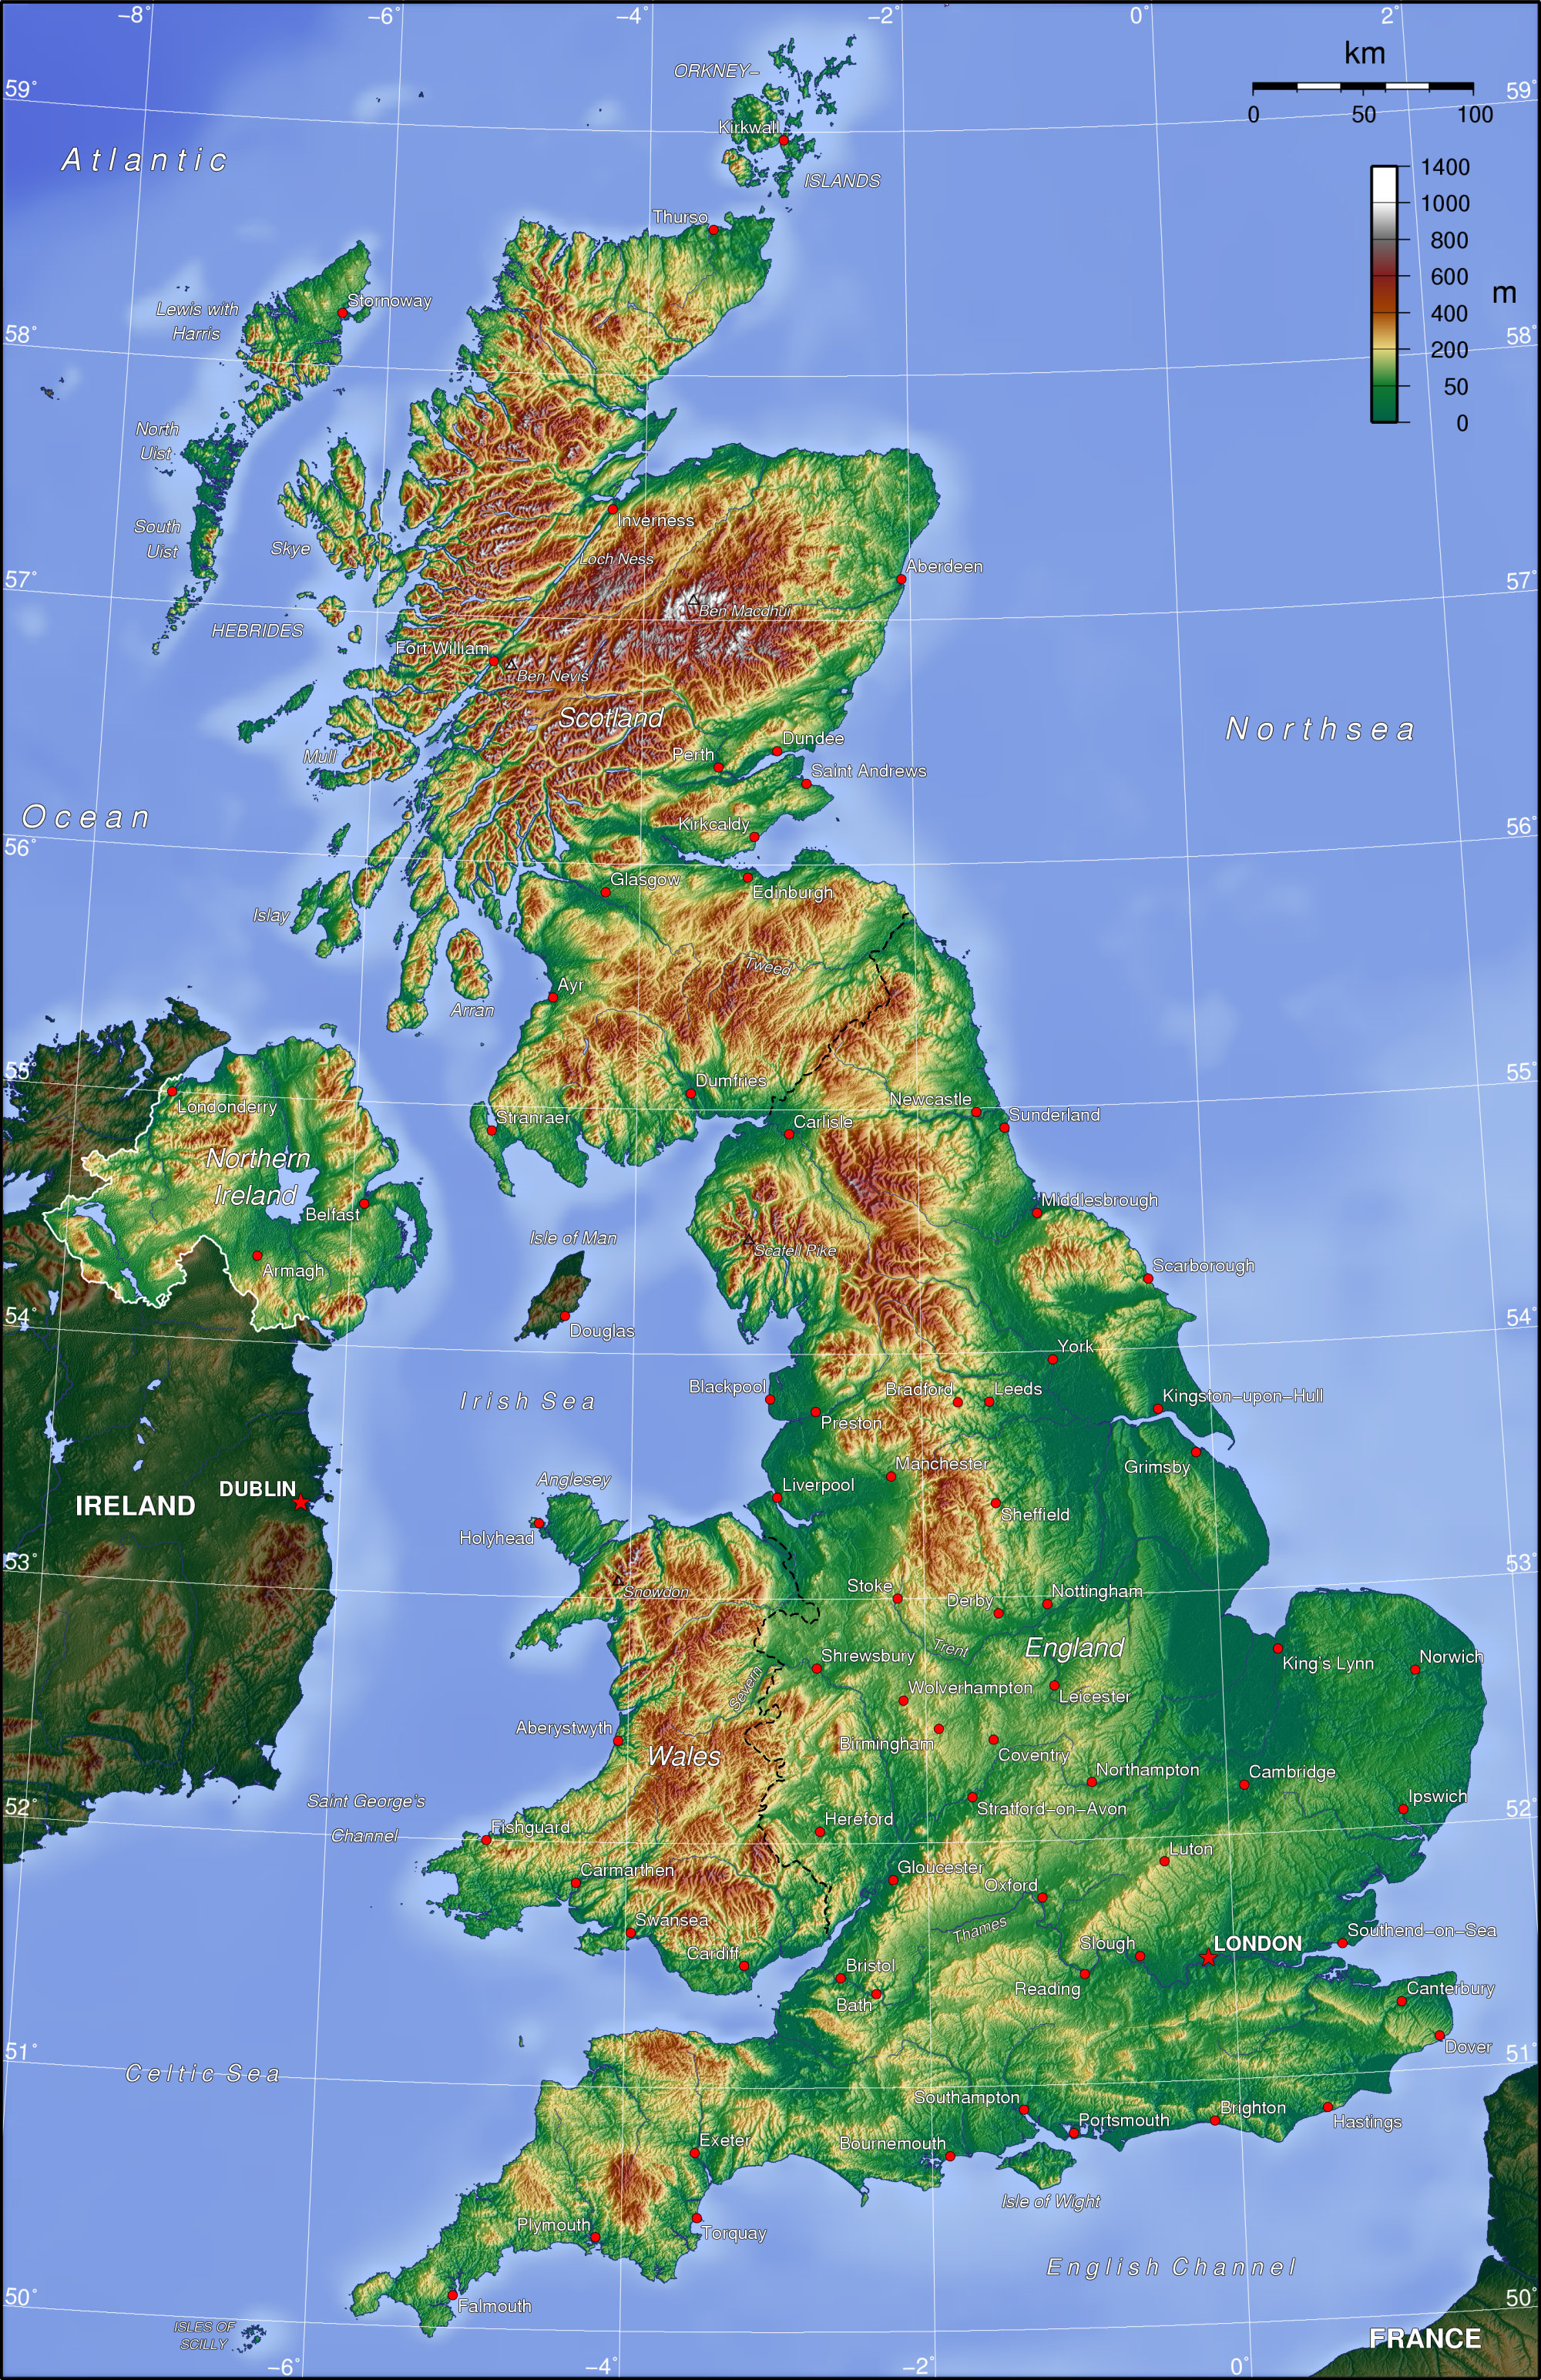 Topographic Maps Uk File:Uk topo en.   Wikimedia Commons Topographic Maps Uk